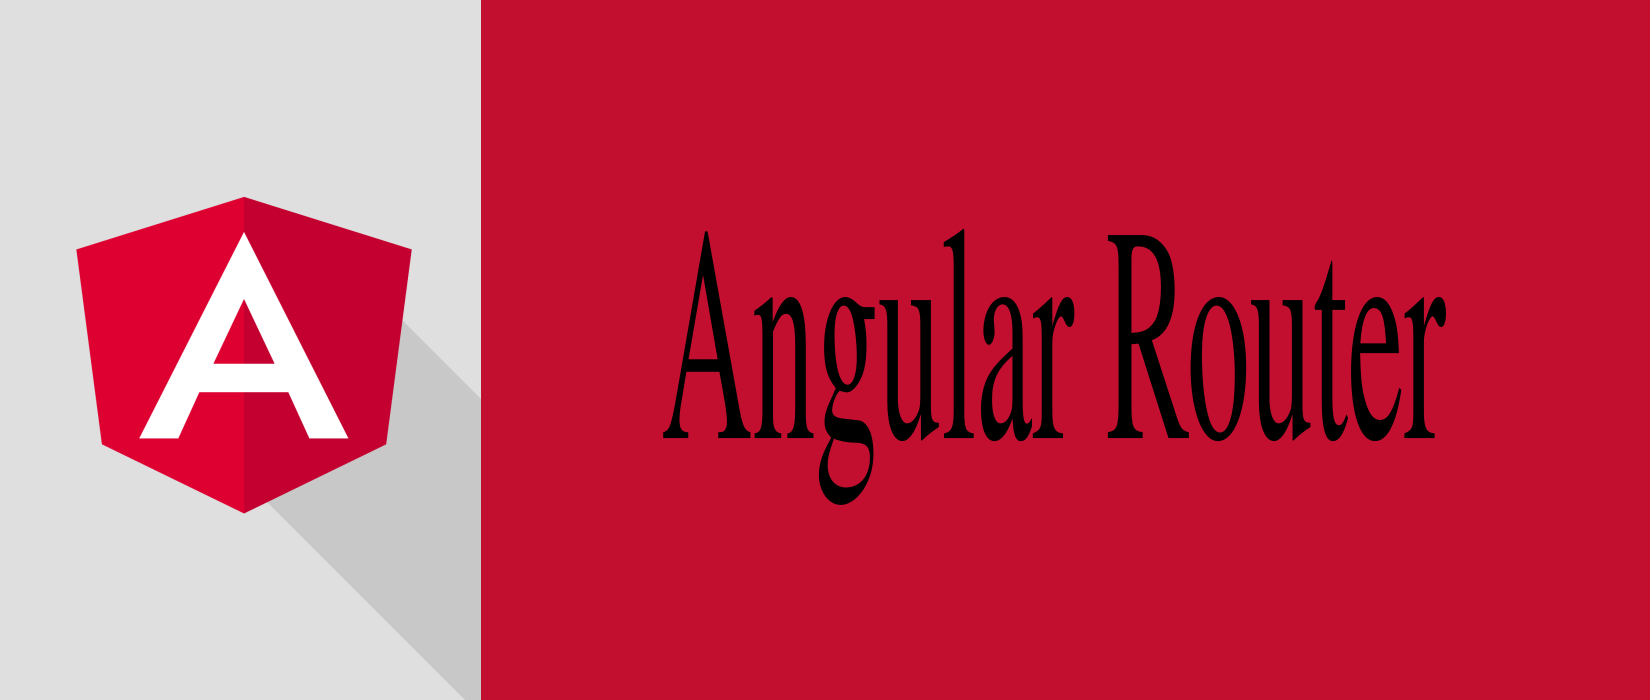 Angular Router